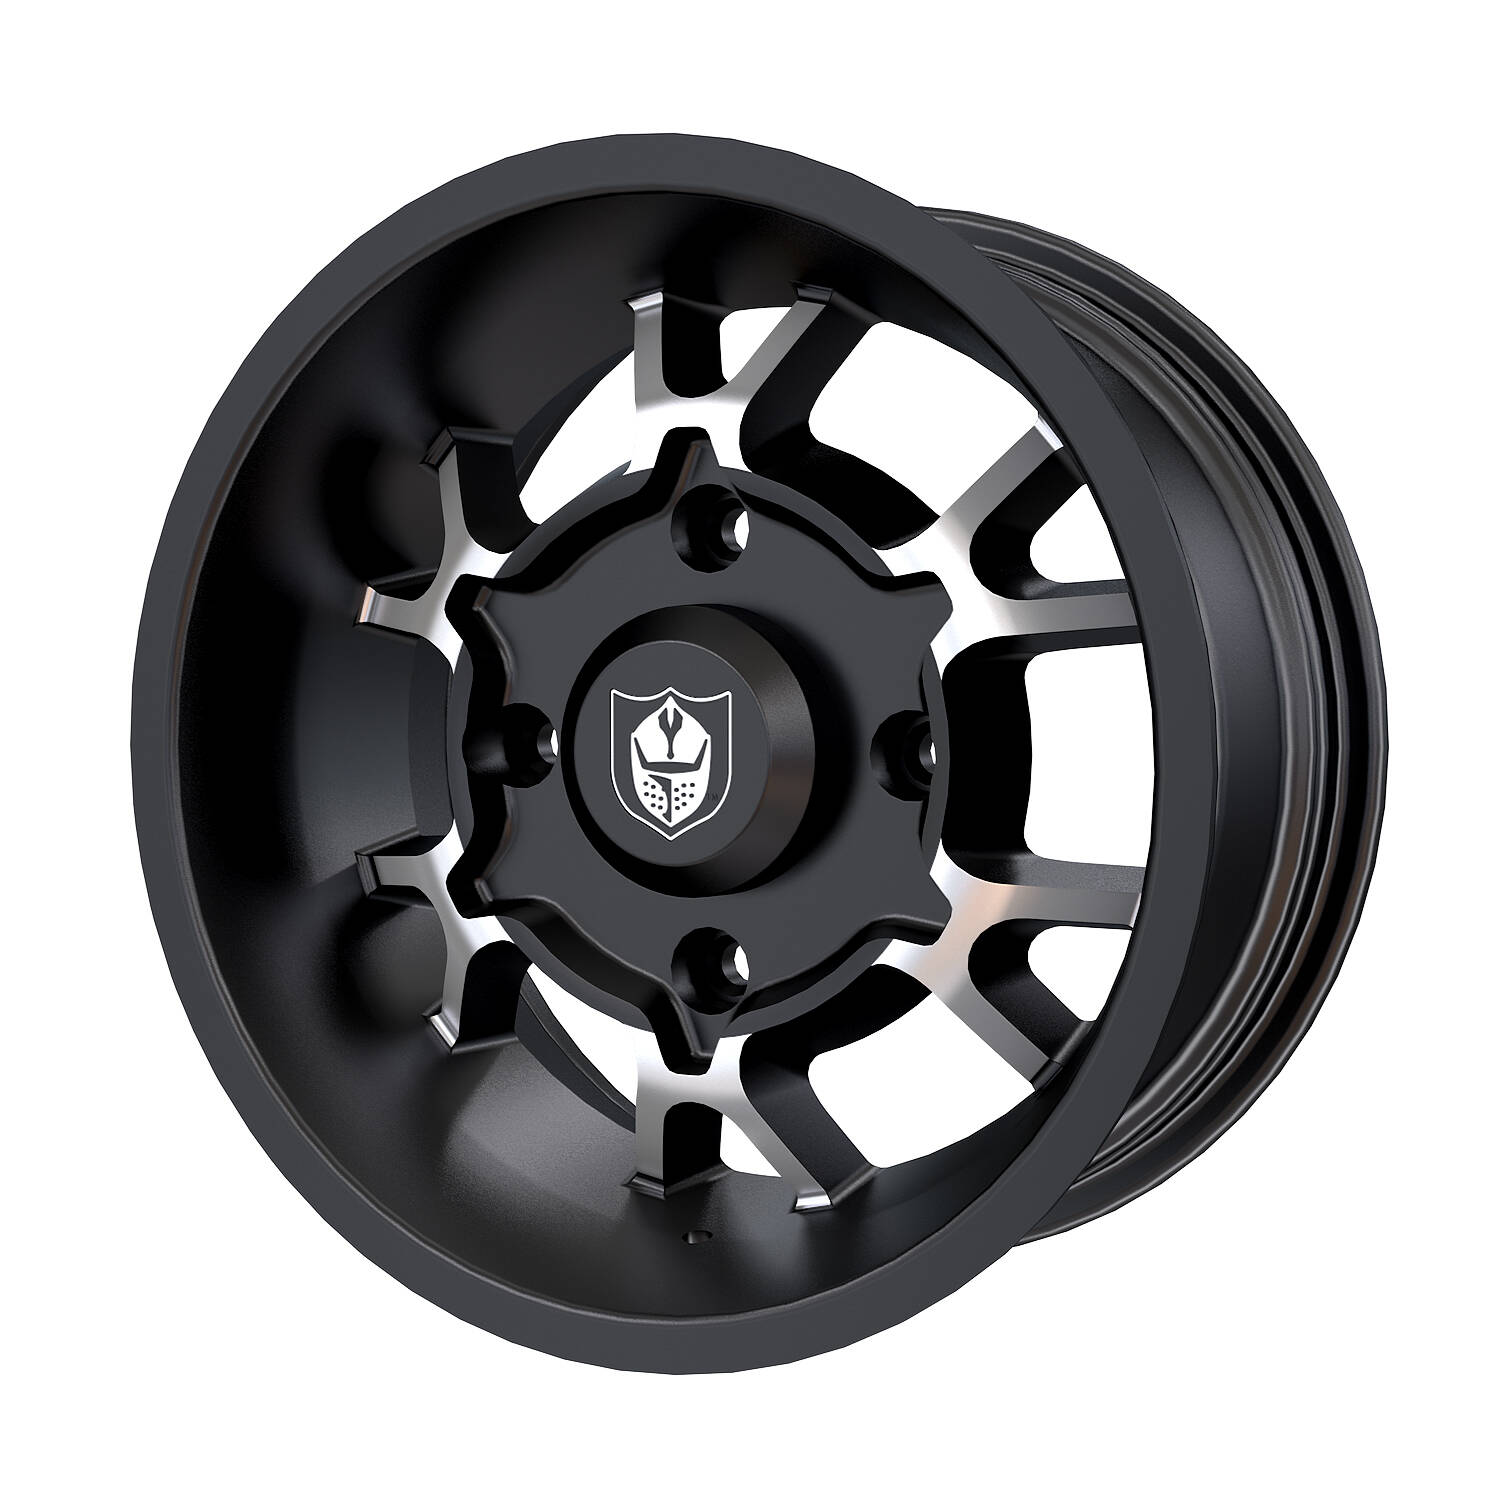 Pro Armor® Cyclone Wheel, Accent Front/Rear R15